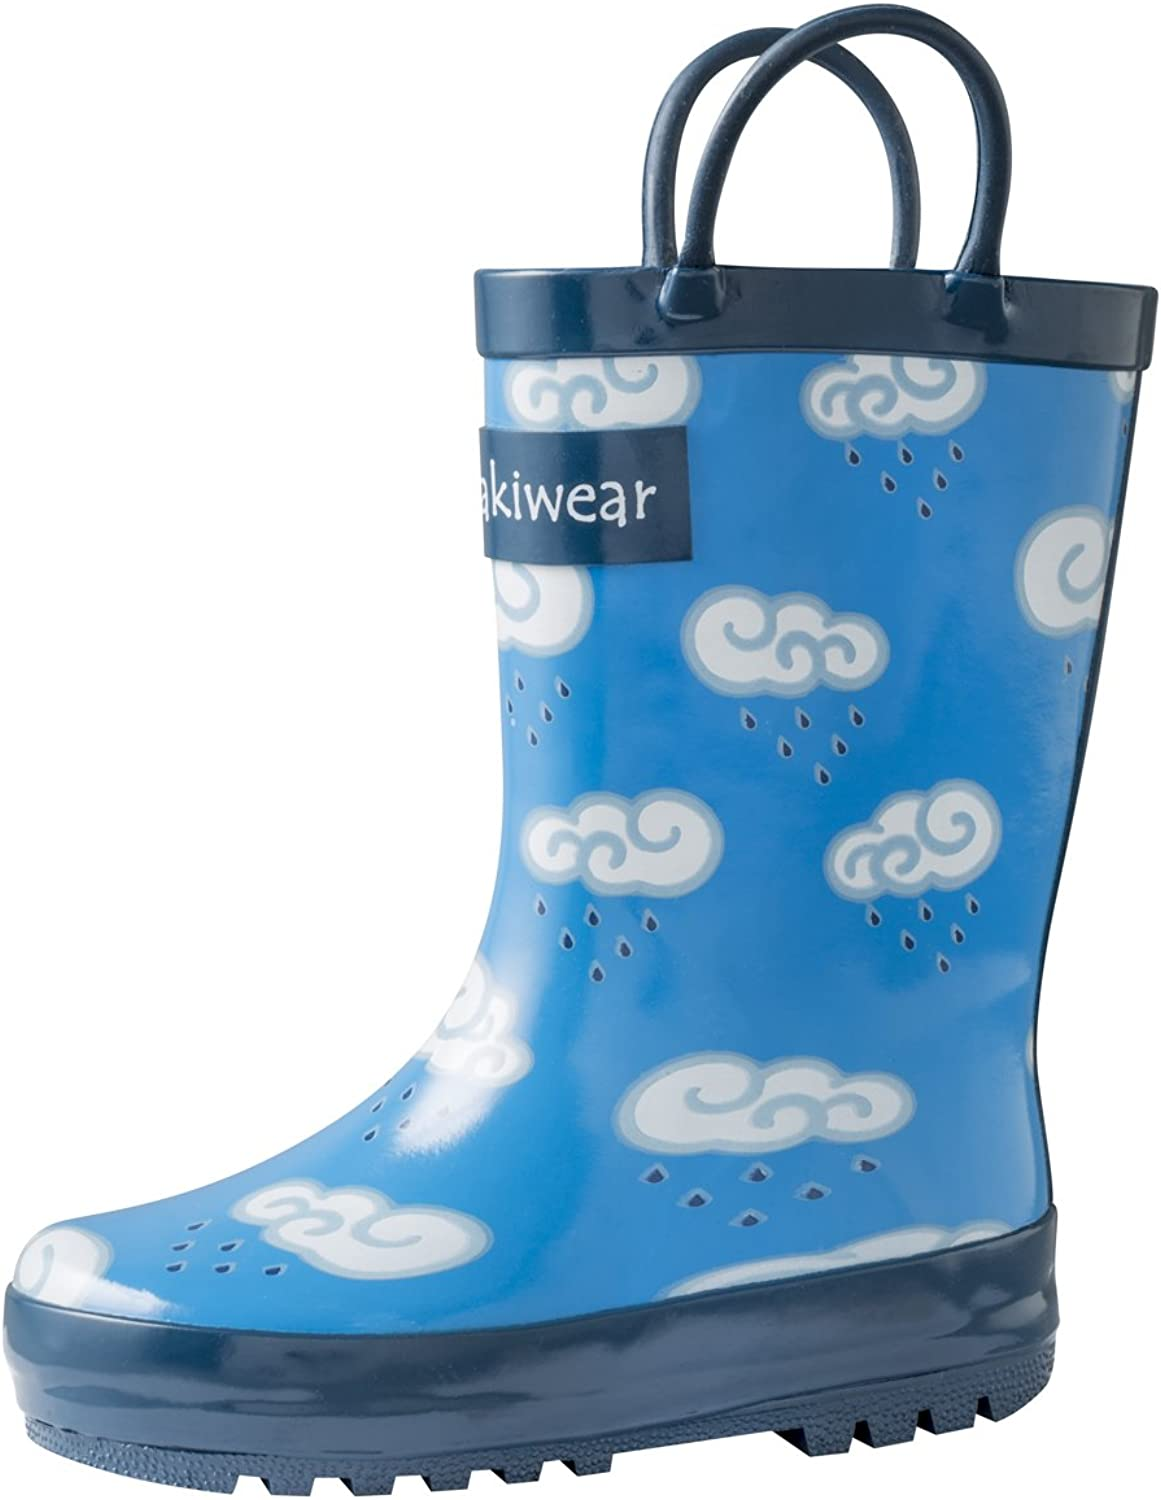 Oakiwear Girls Rubber Rain Boots (Little Kid Big Kid) w Easy-On Handles